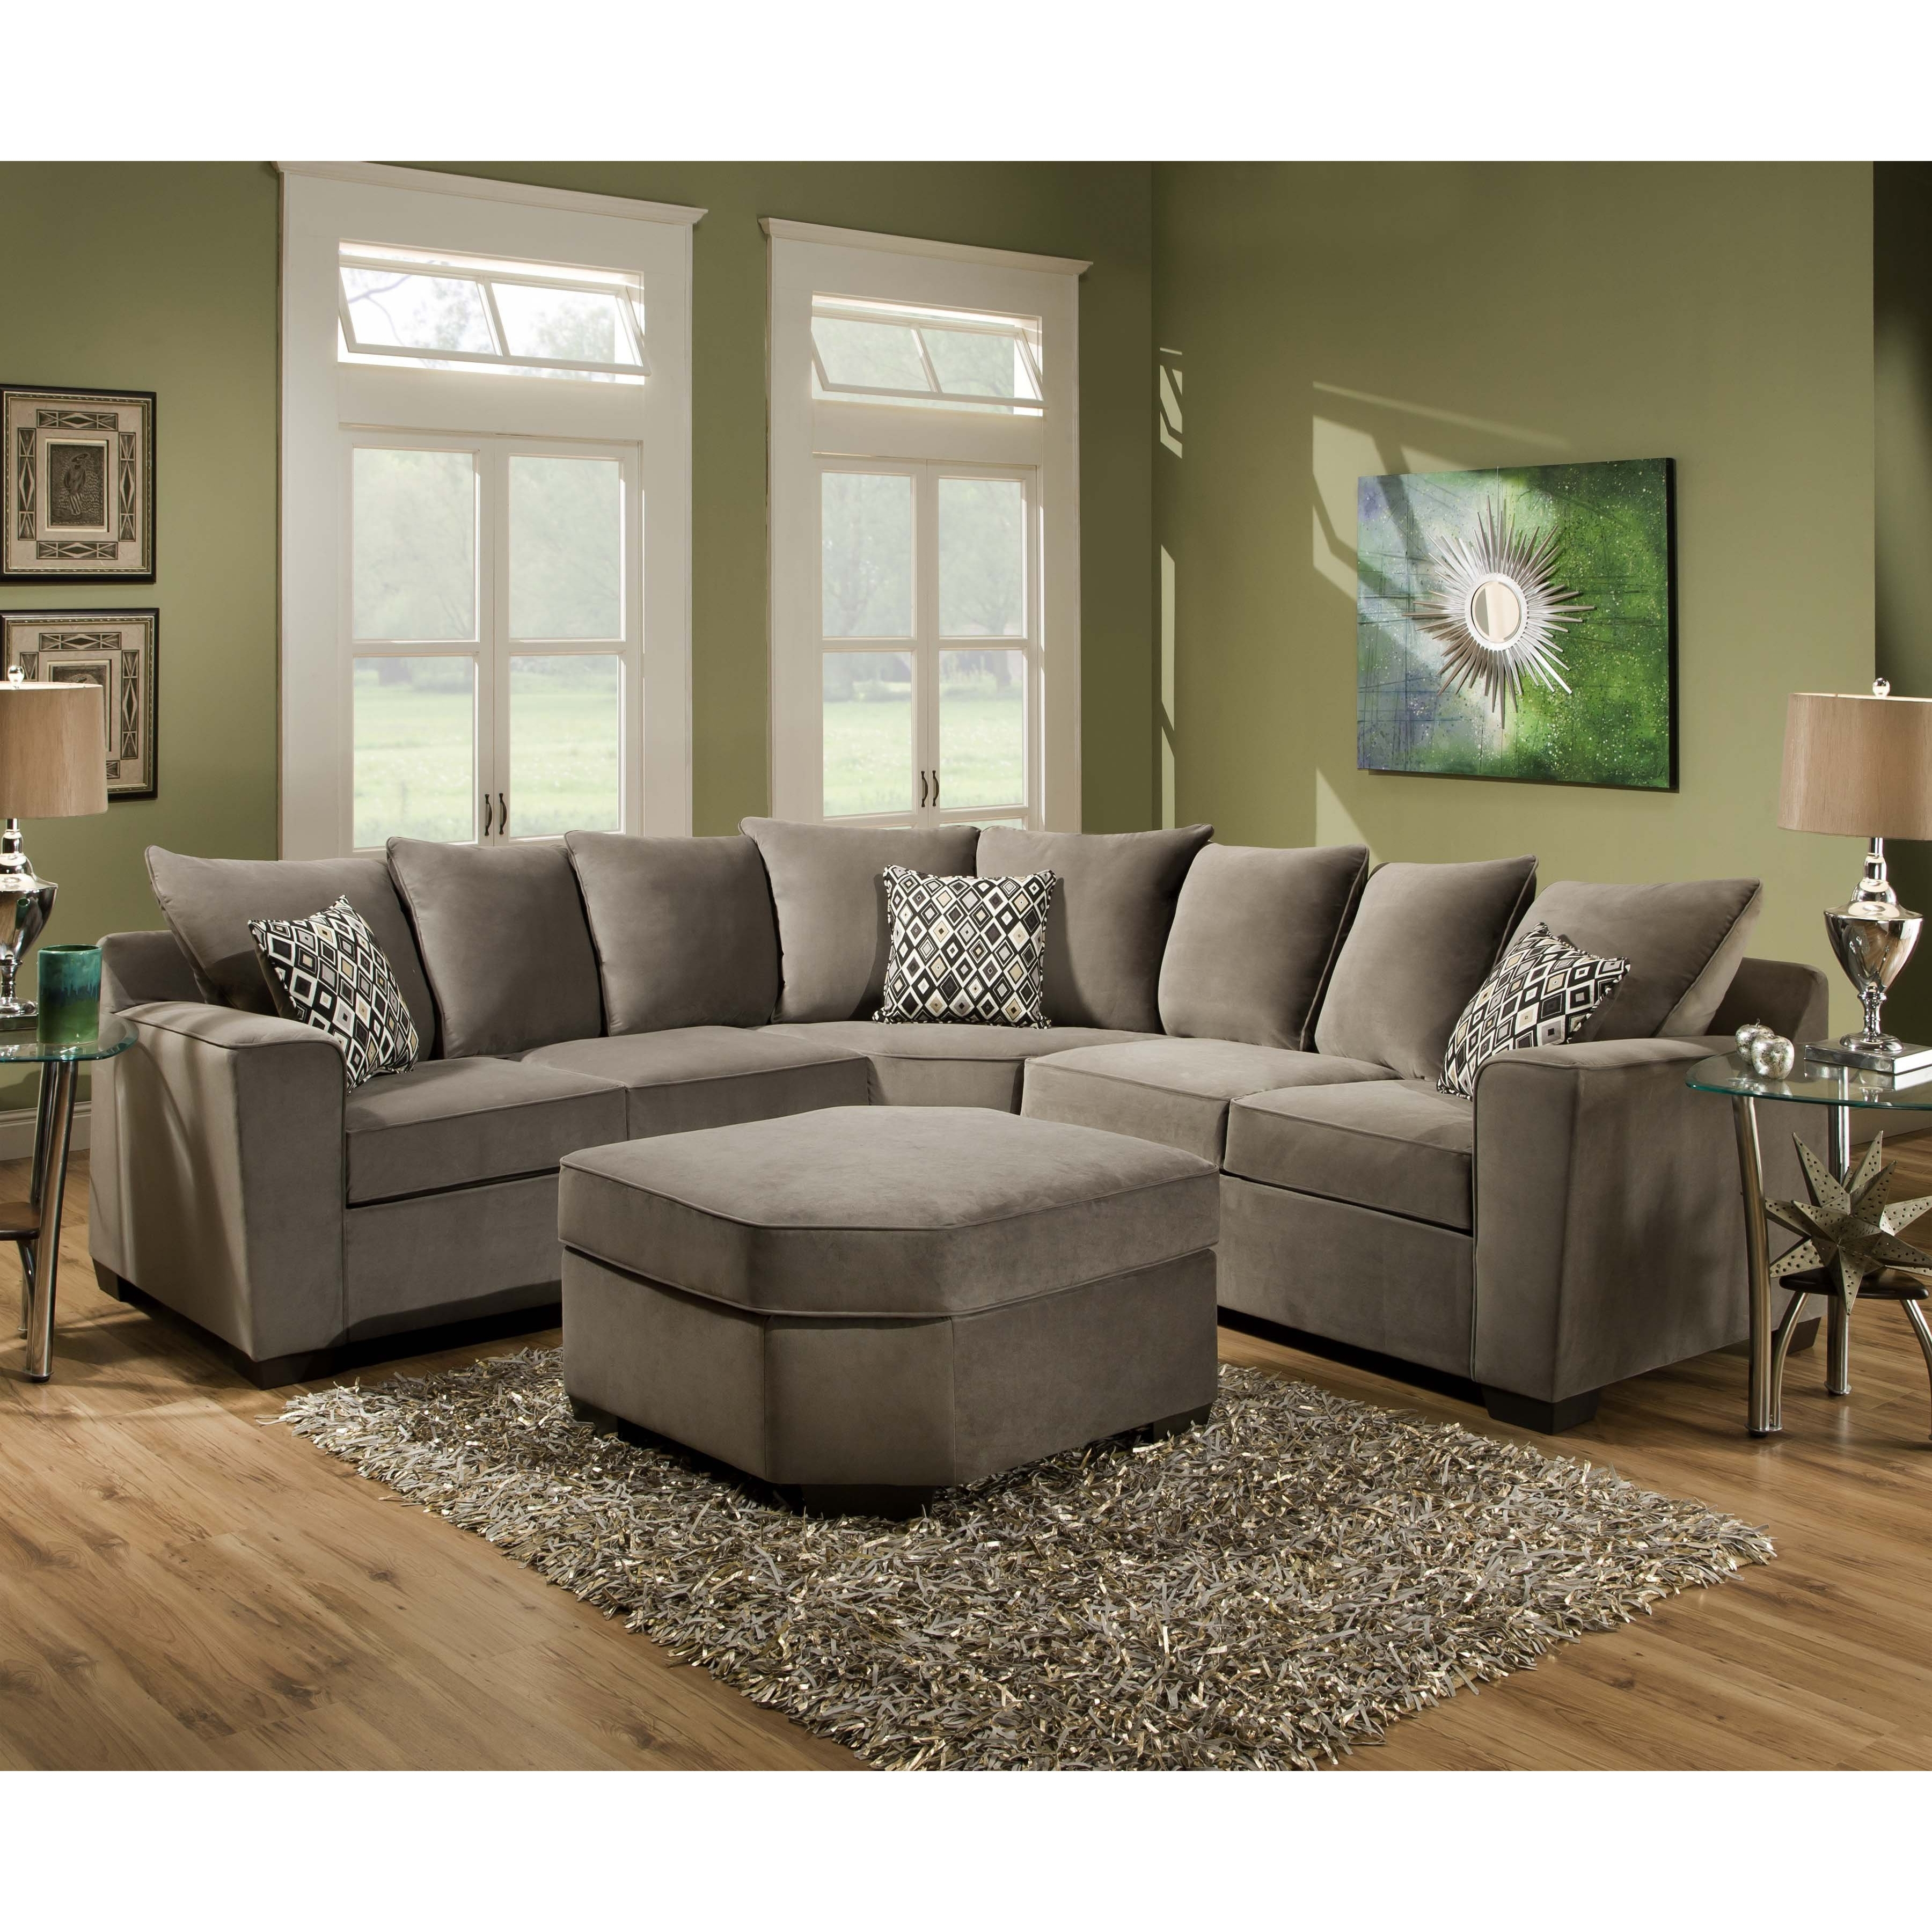 Reclining Sectional Sofas (View 10 of 15)